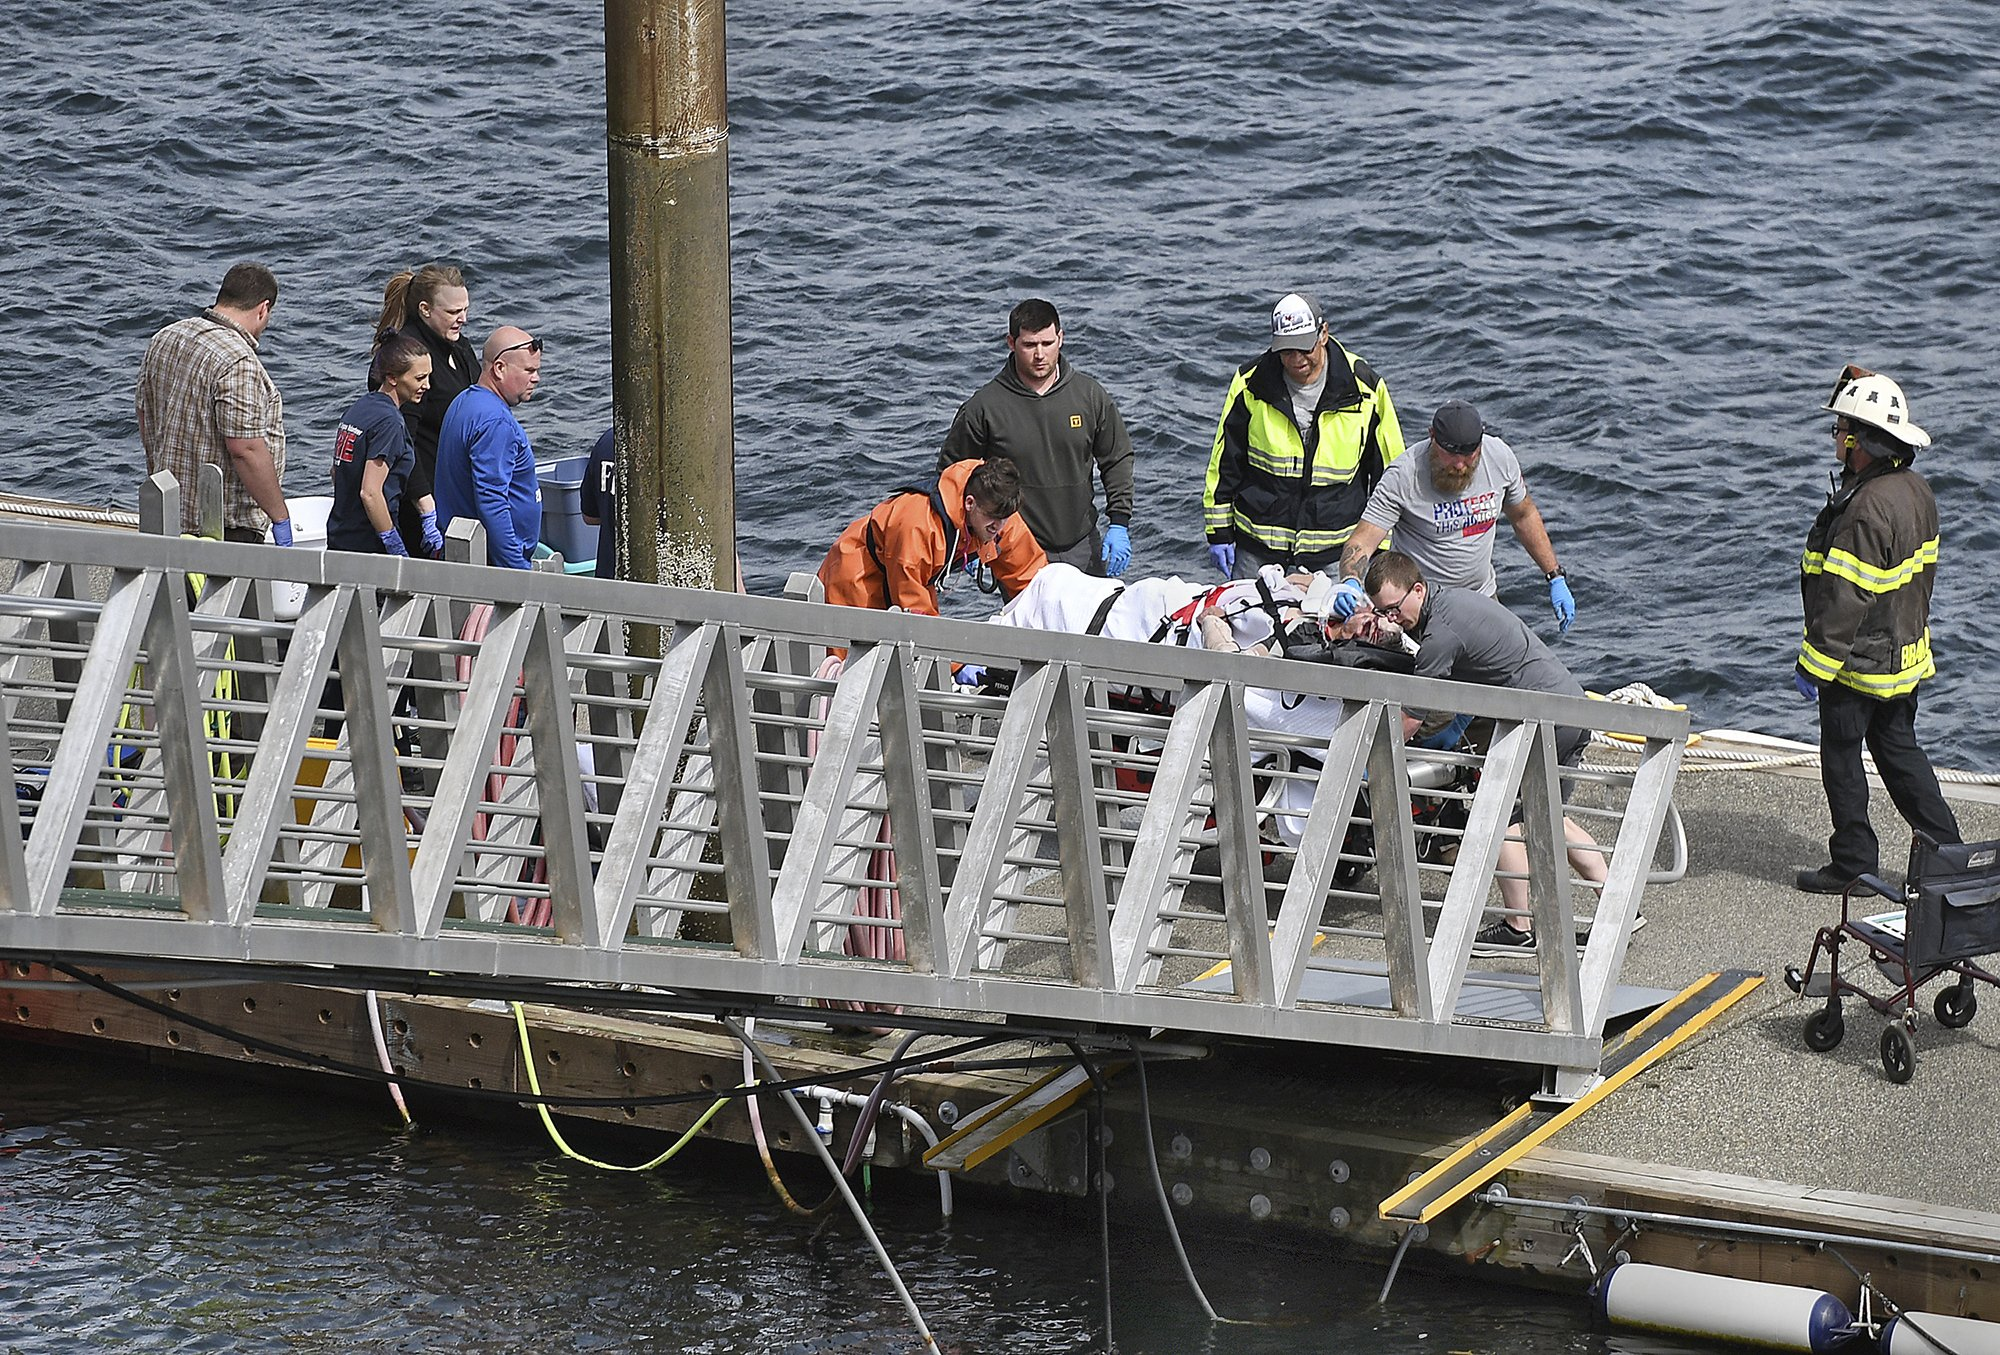 NTSB to investigate in Alaska after deadly midair collision